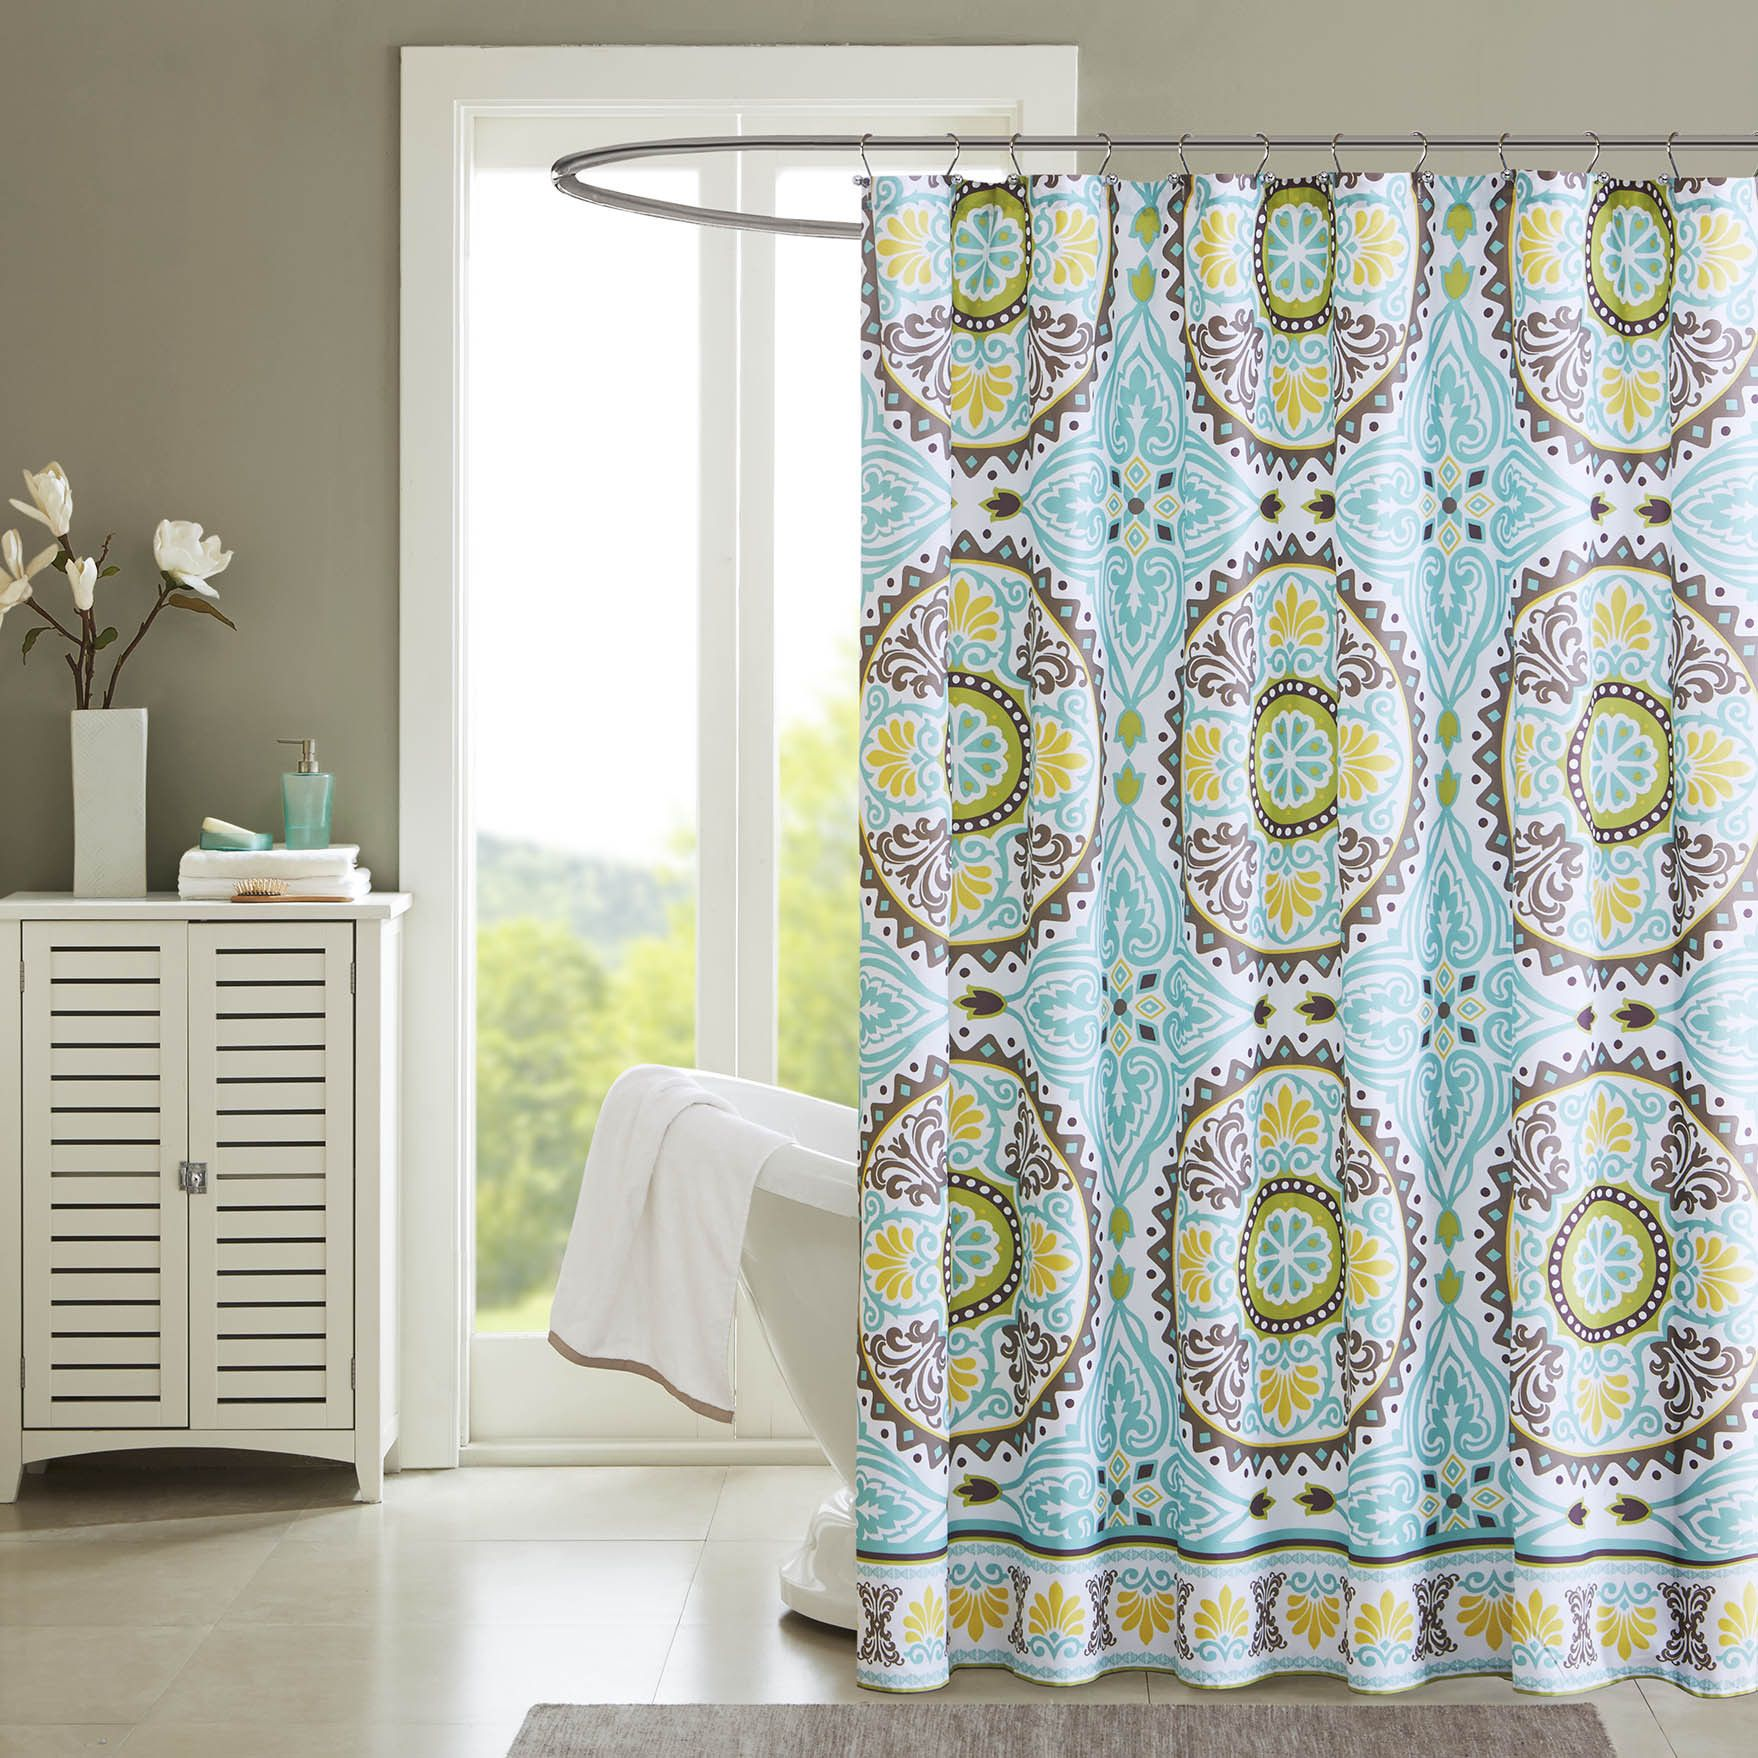 Get A Taste Of Indonesia In Your Bathroom With The Bali Shower Curtain Featuring Dusty